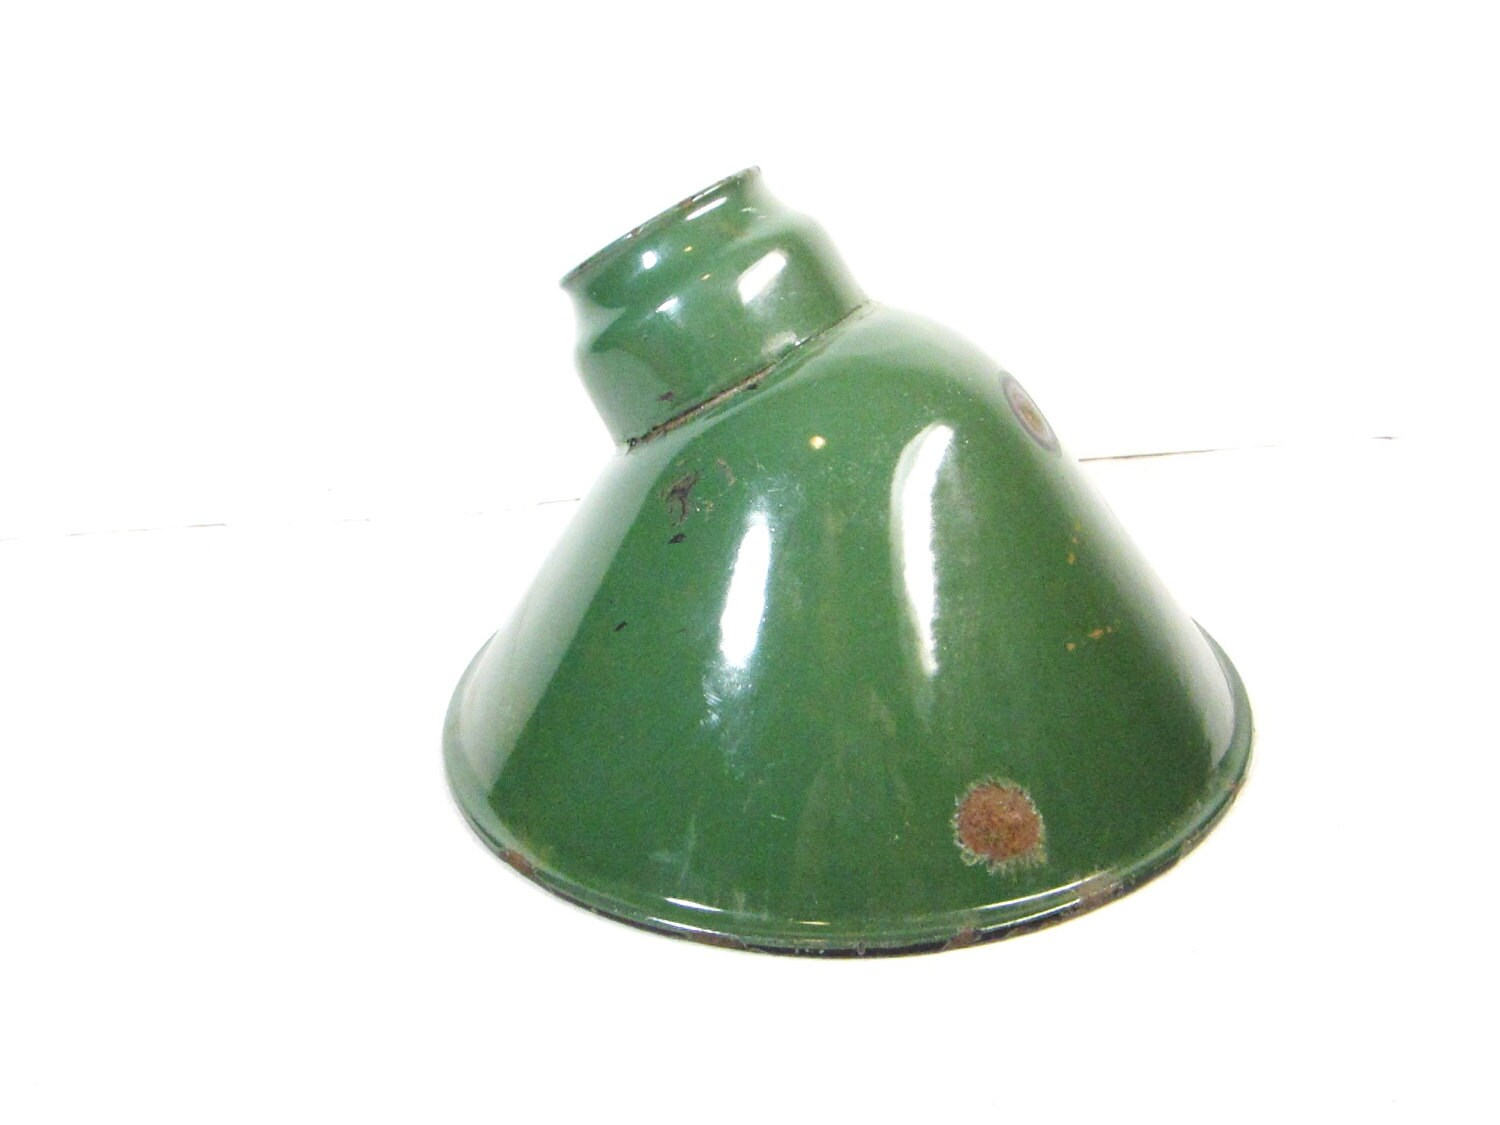 Lamp Shades On Antique Green Porcelain Light Shade Industrial Metal Lamp  Shade Old